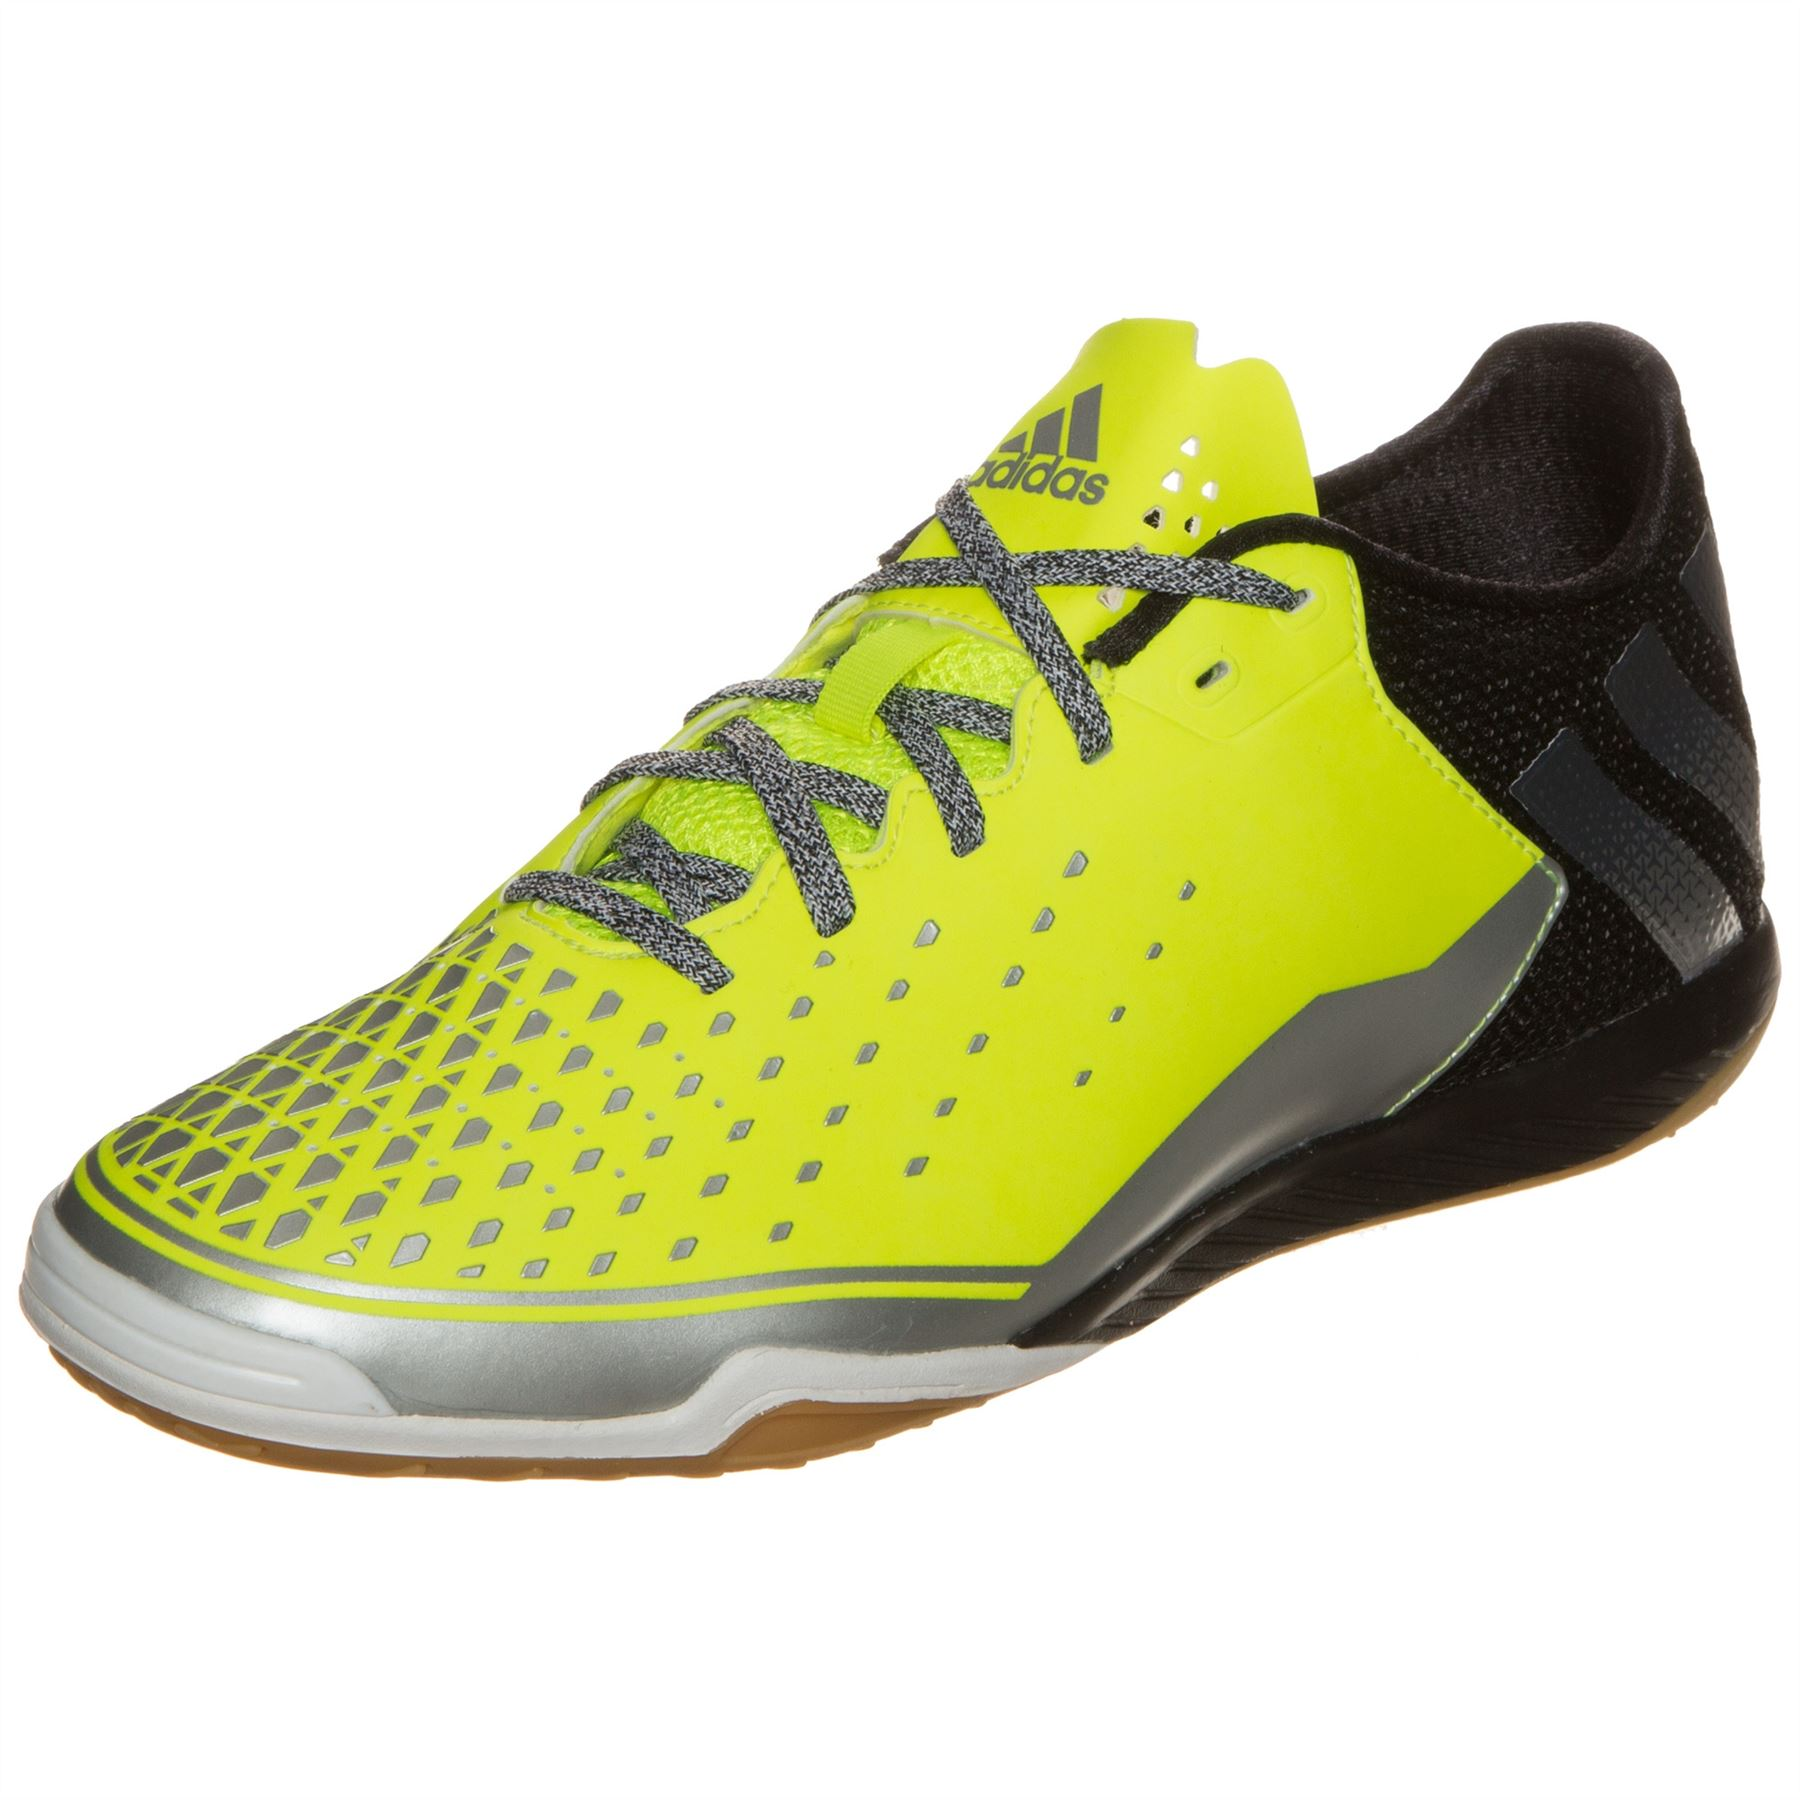 best service 5a1ab 27335 Details about adidas Ace 16.2 Court Indoor Football Shoes Mens Yel/Blk  Futsal Soccer Trainers